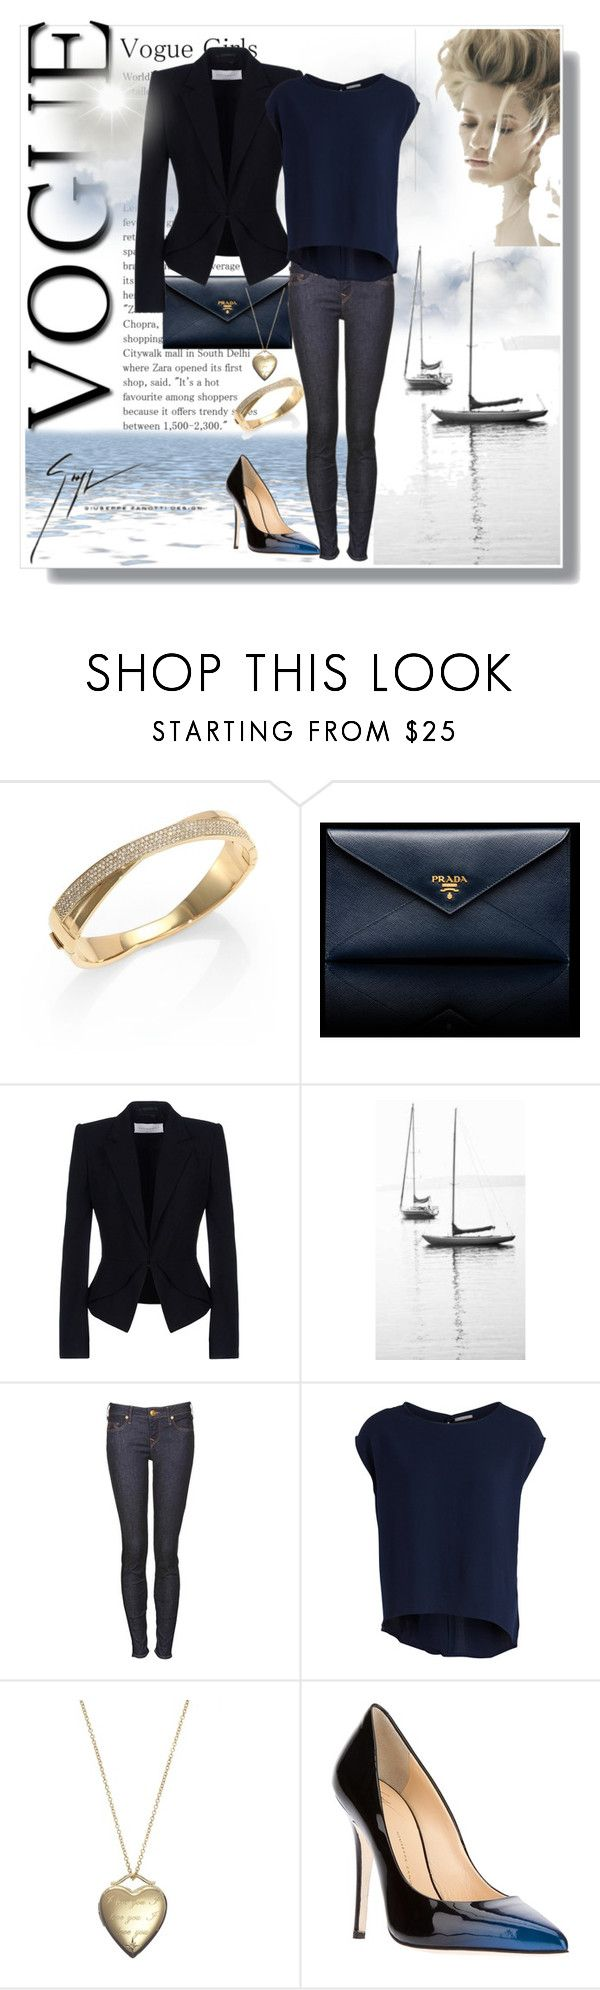 Midnight Blue by pmcdl on Polyvore featuring Pieces, Viktor & Rolf, True Religion, Giuseppe Zanotti, Prada, Michael Kors, Crislu, Andres Sarda, GiuseppeZanotti and casualoutfit